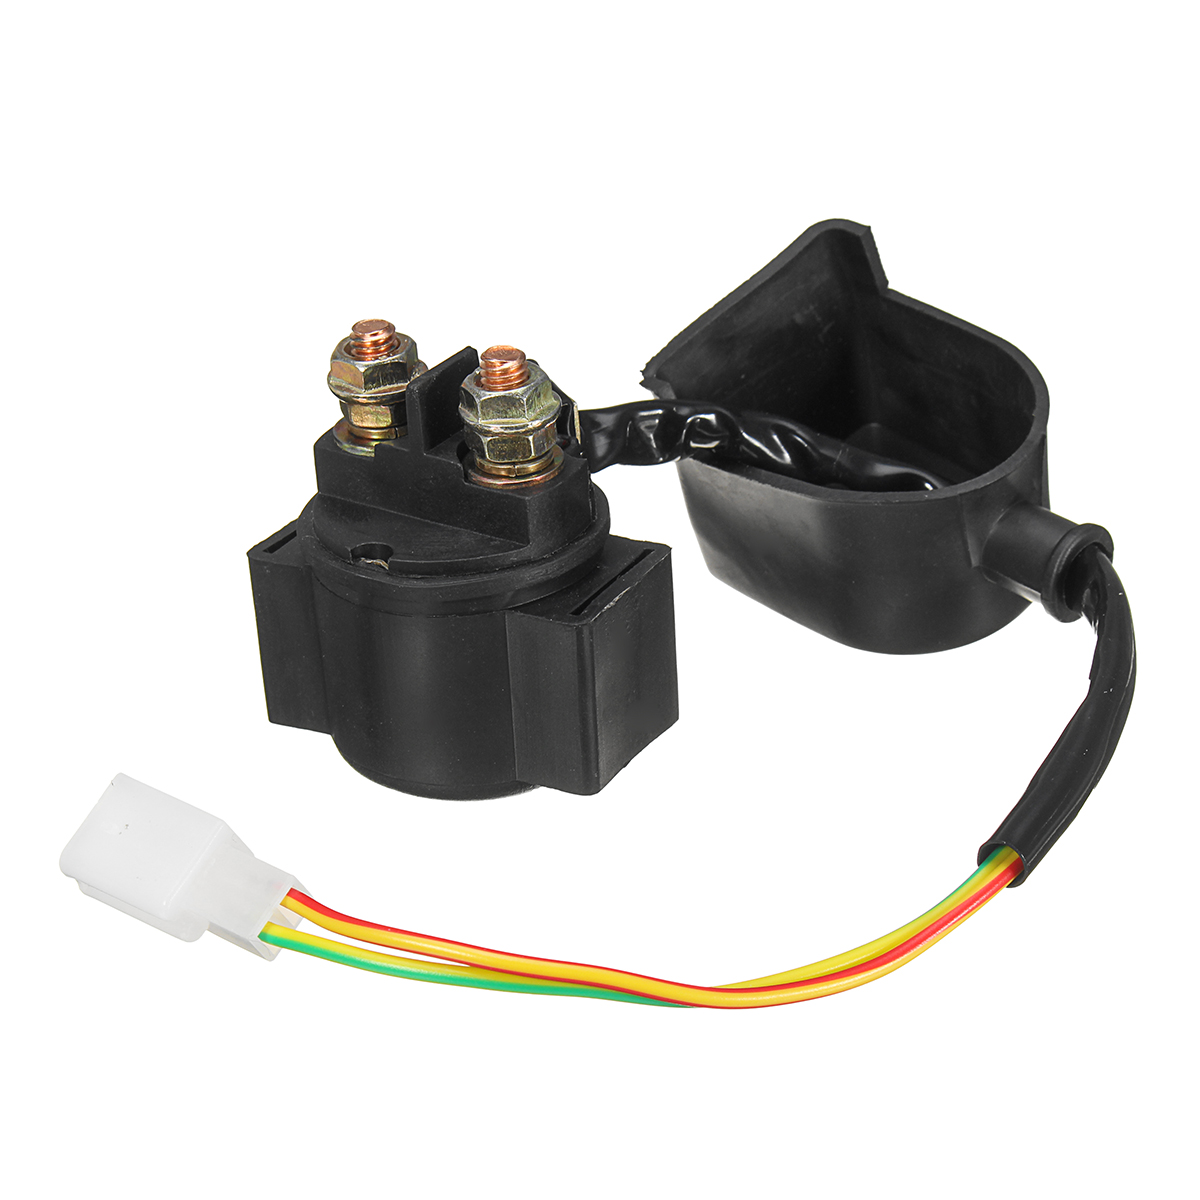 Forceful 12v Starter Solenoid Relay For Atv Go Kart Pit Dirt Bike Quad 90cc 110cc 125cc Skilful Manufacture Back To Search Resultsautomobiles & Motorcycles Atv,rv,boat & Other Vehicle